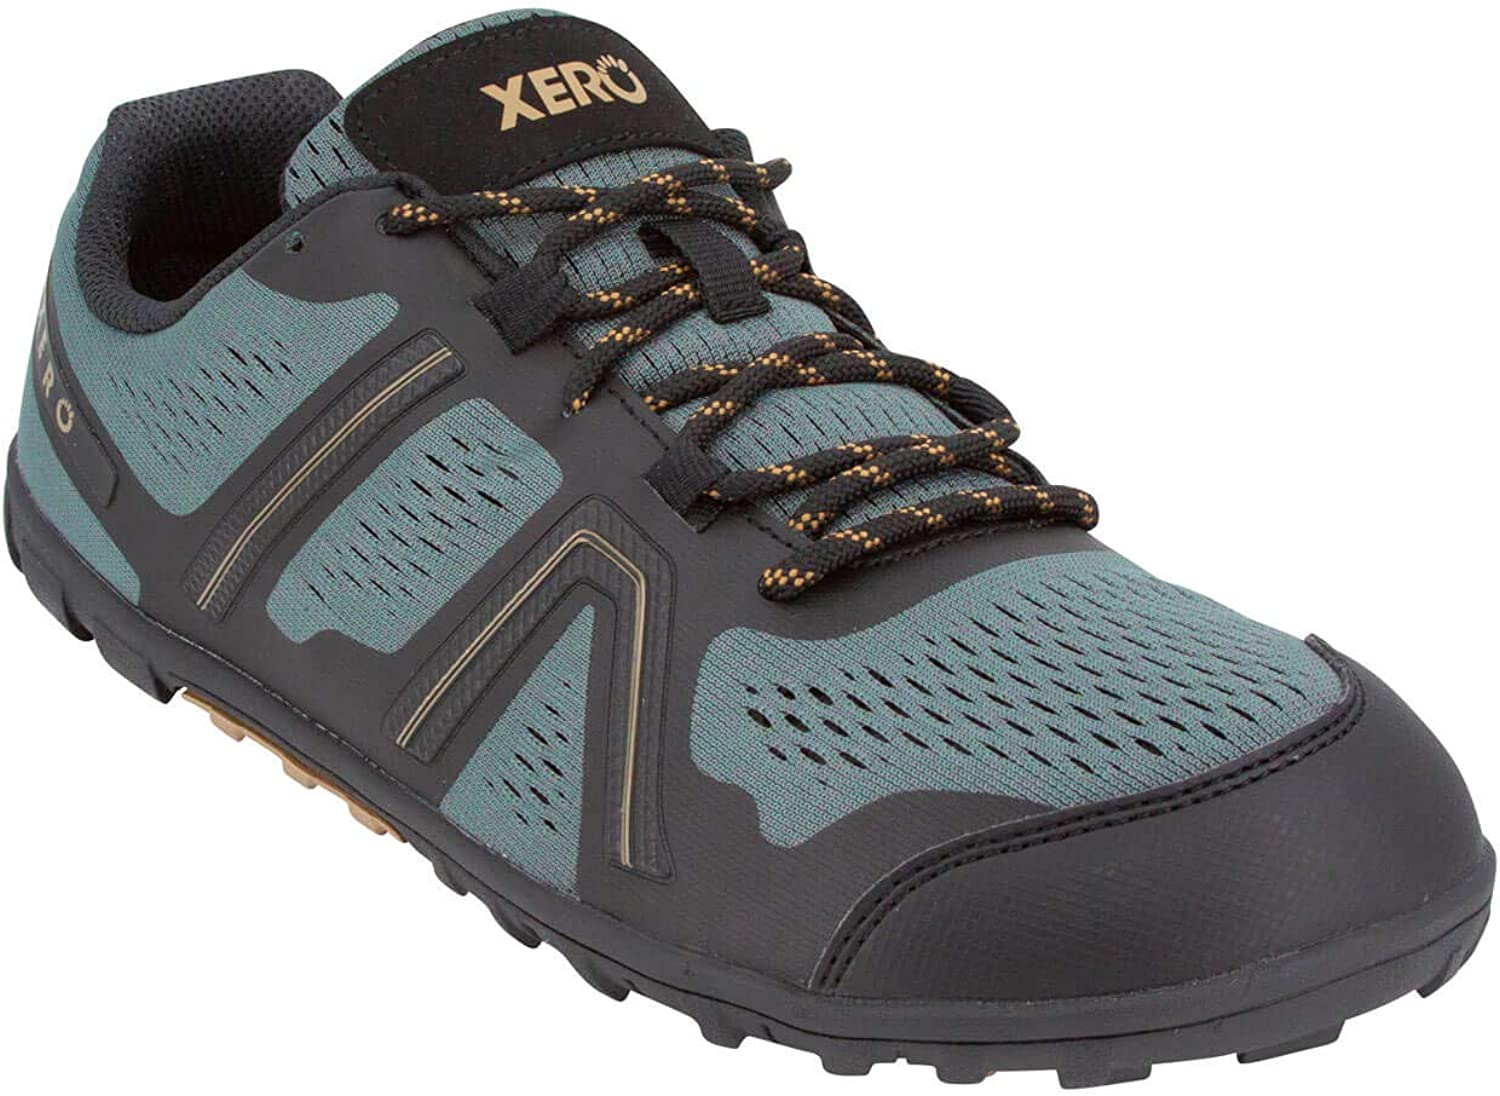 Xero Shoes Mesa Trail – Men s Lightweight Barefoot-Inspired Minimalist Trail Running Shoe. Zero Drop Sneaker